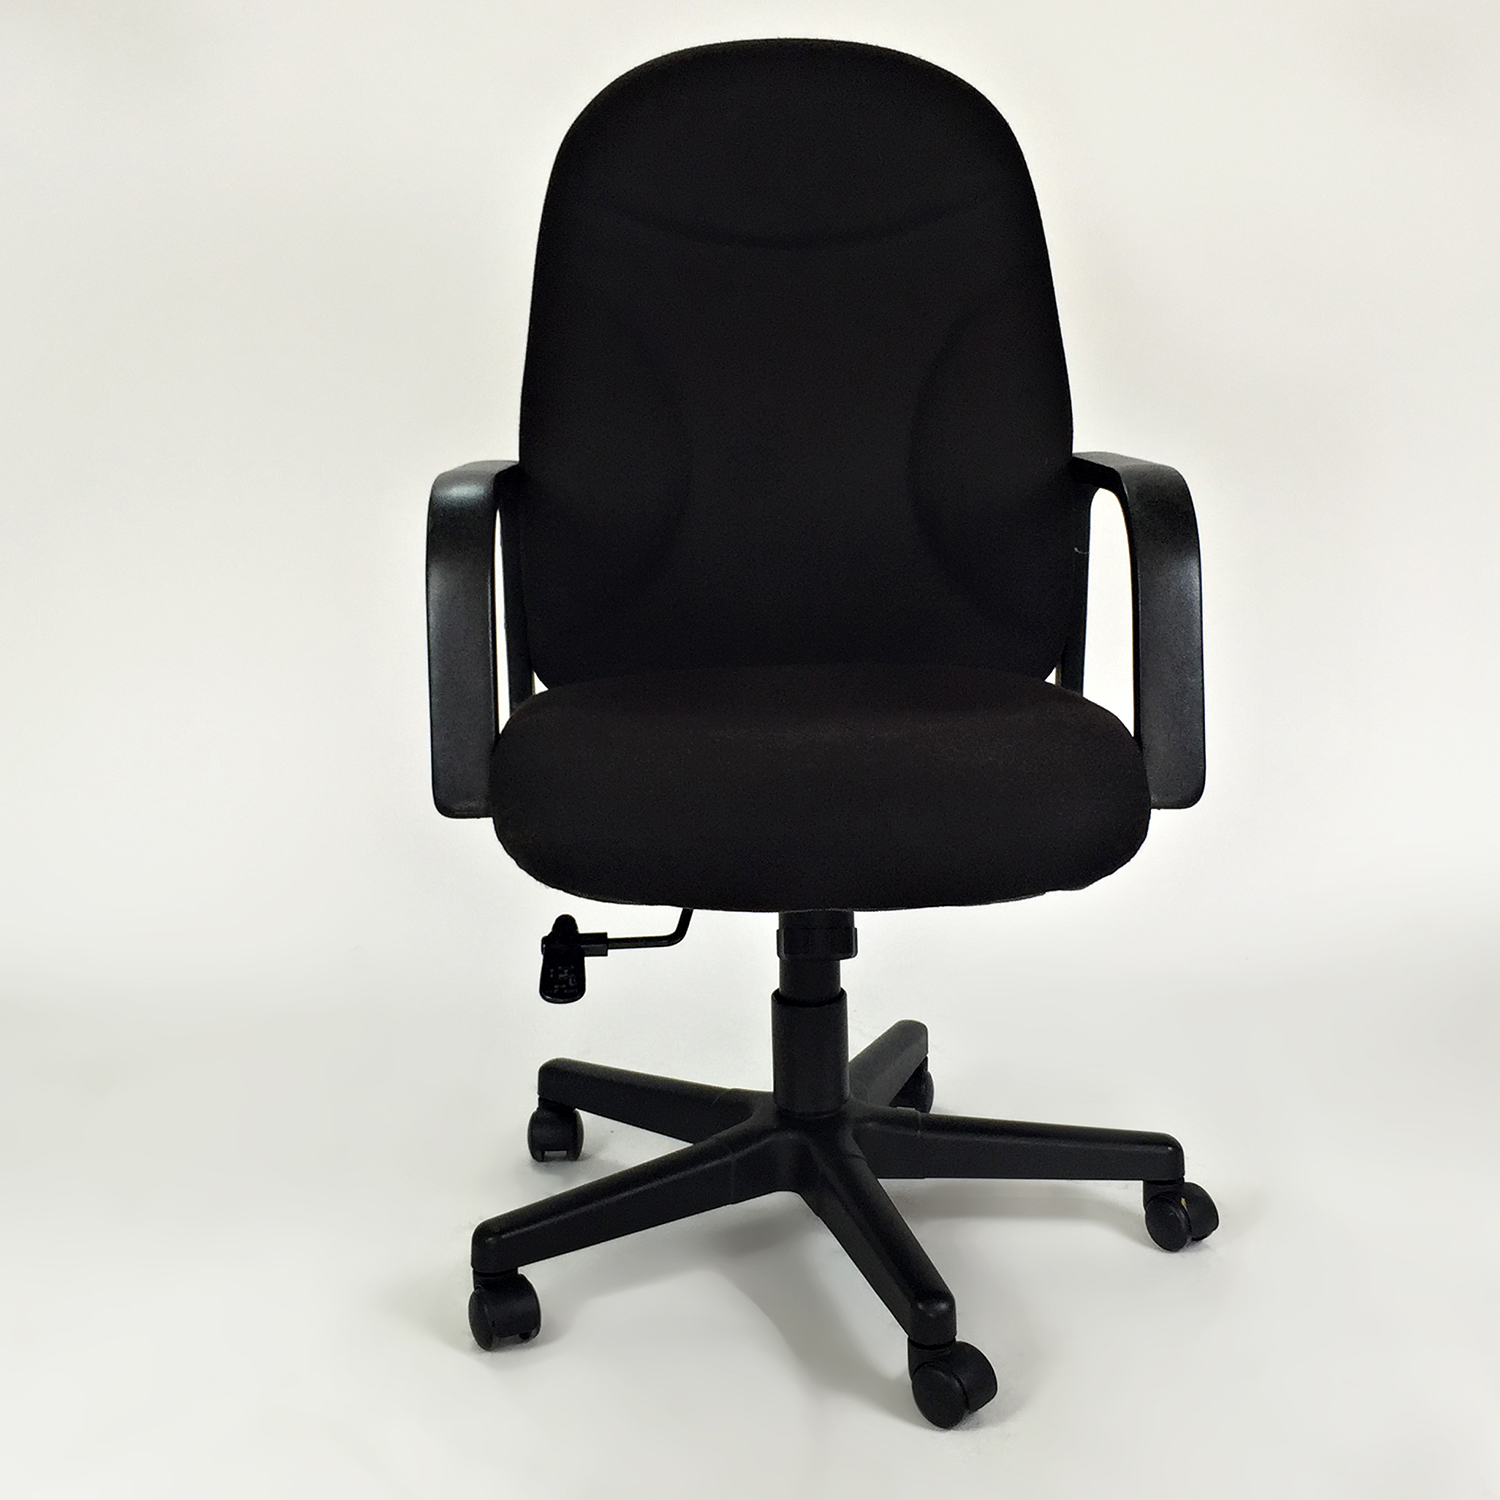 78% off - unknown brand black office chair / chairs